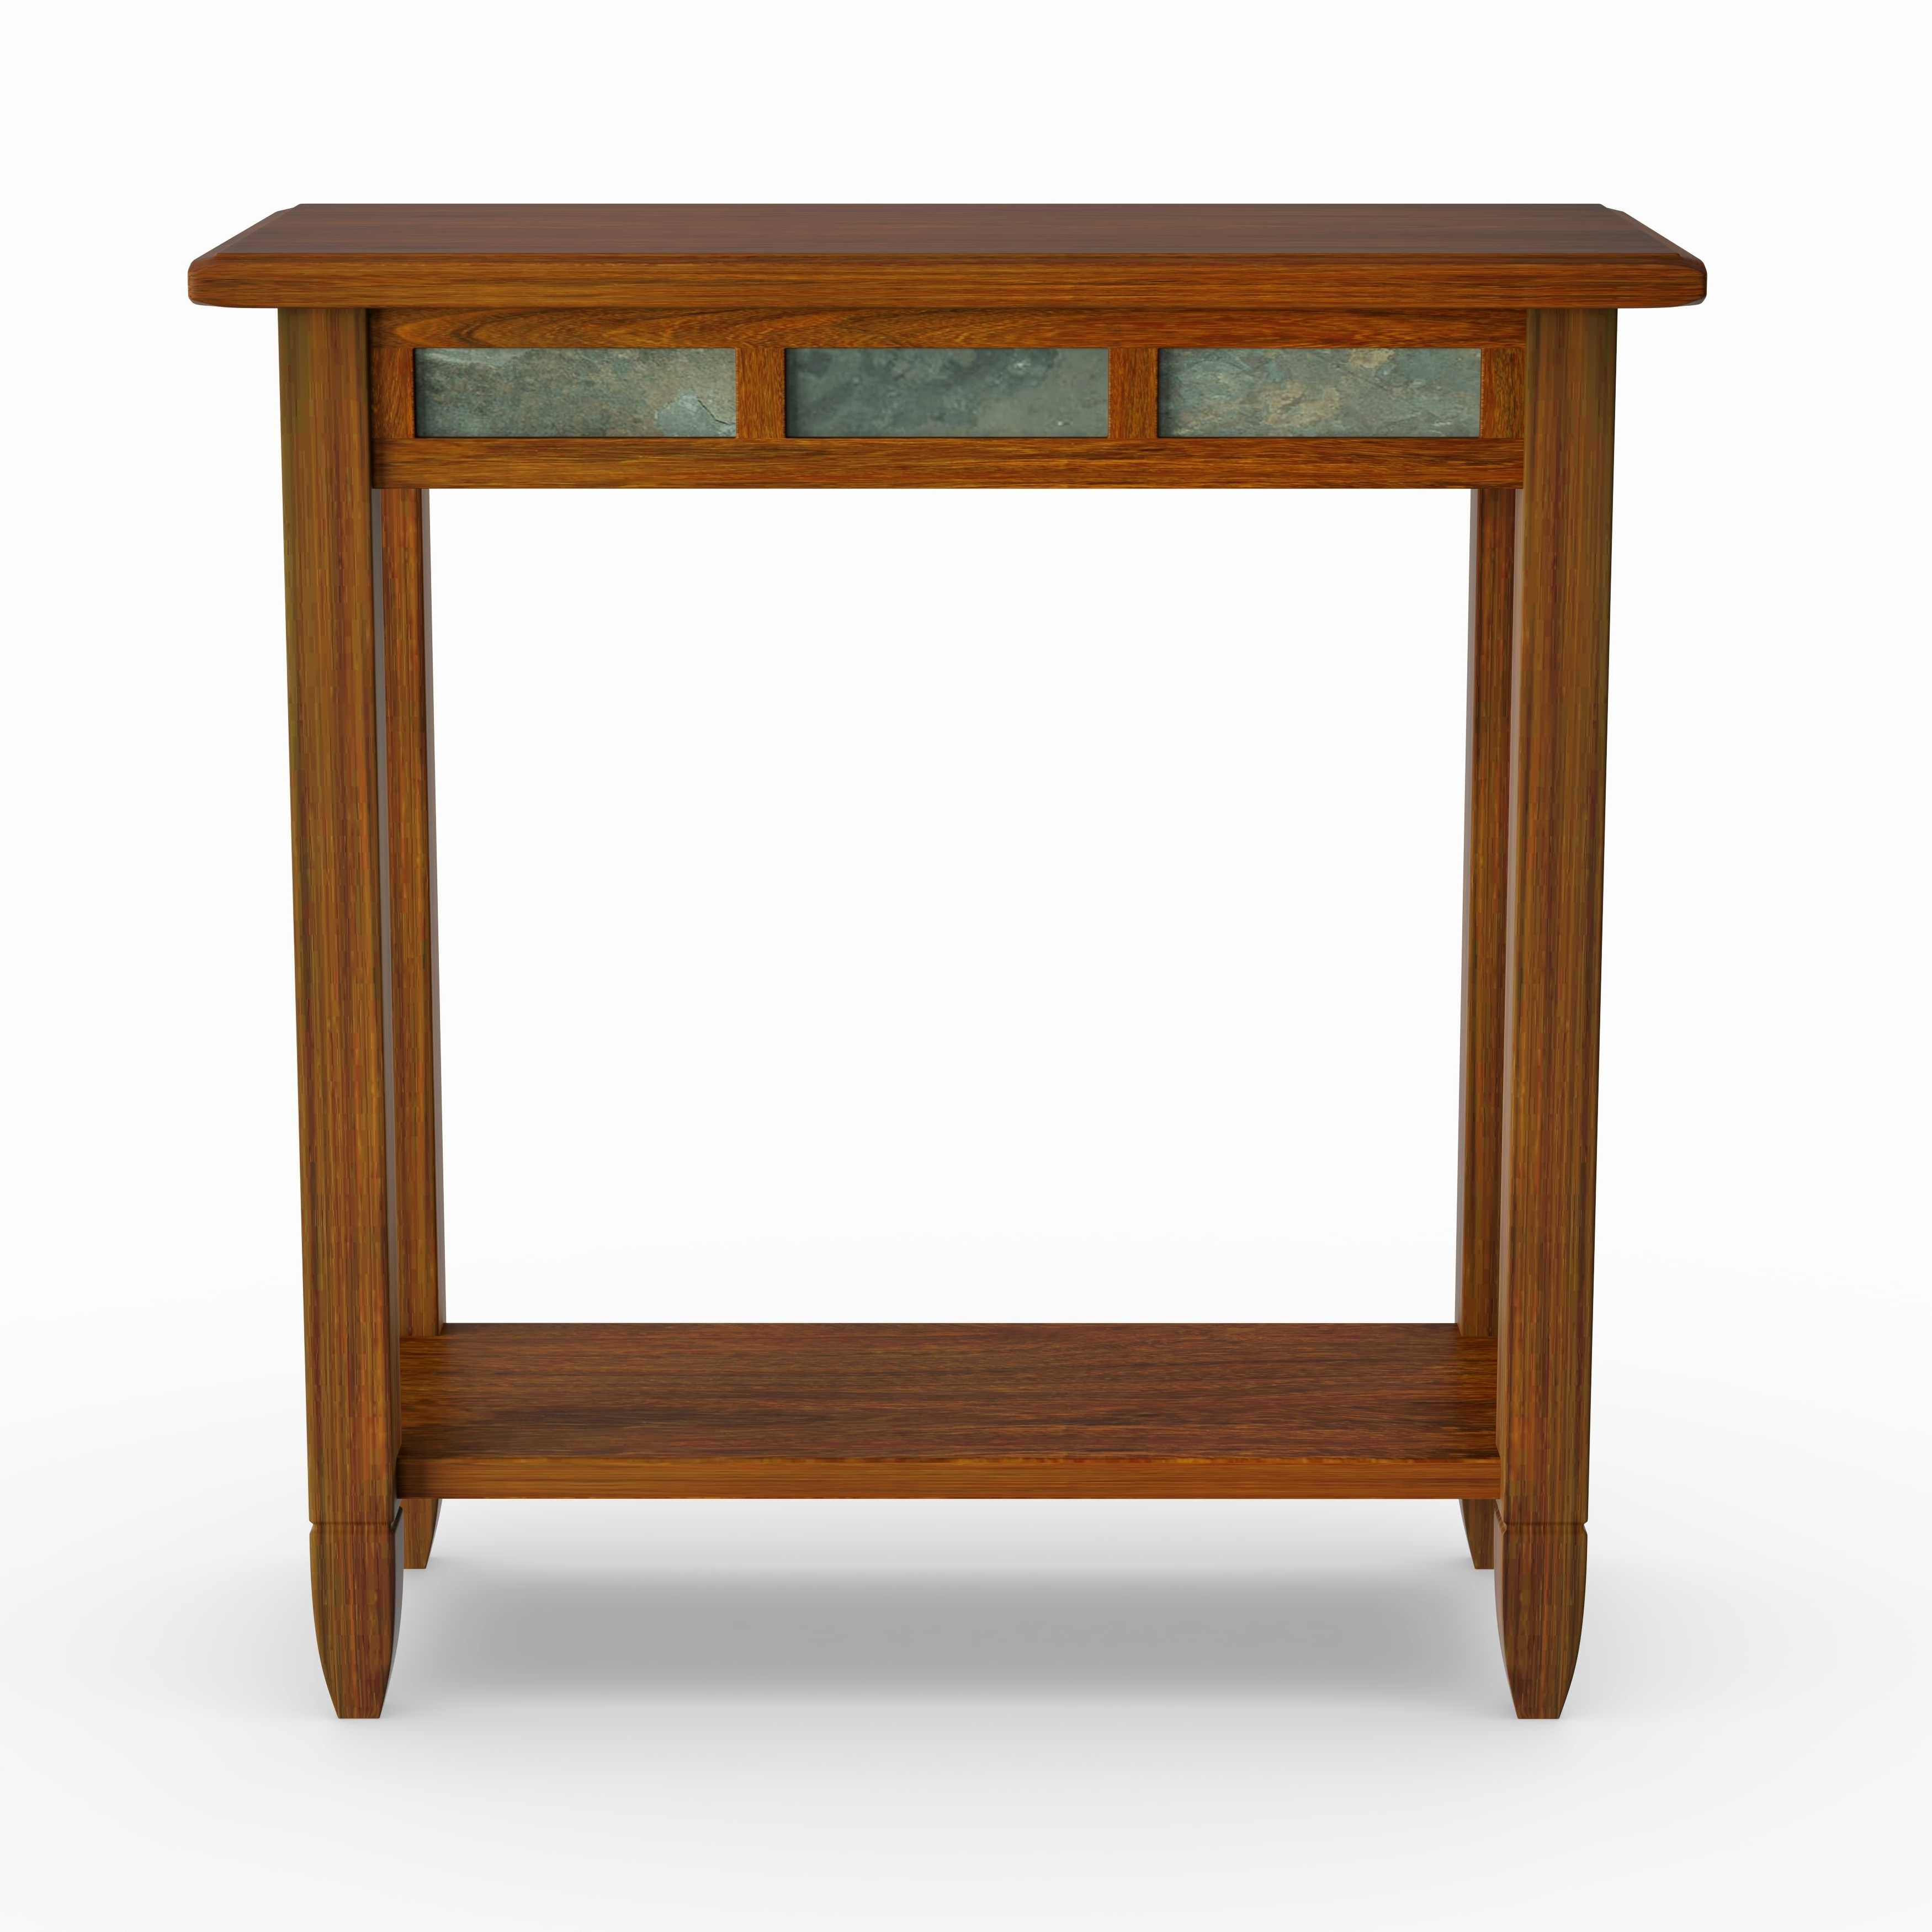 Popular Copper Grove Ixia Rustic Oak And Slate Tile Coffee Tables Pertaining To Copper Grove Ixia Rustic Oak And Slate Tile Chairside Table (View 15 of 20)